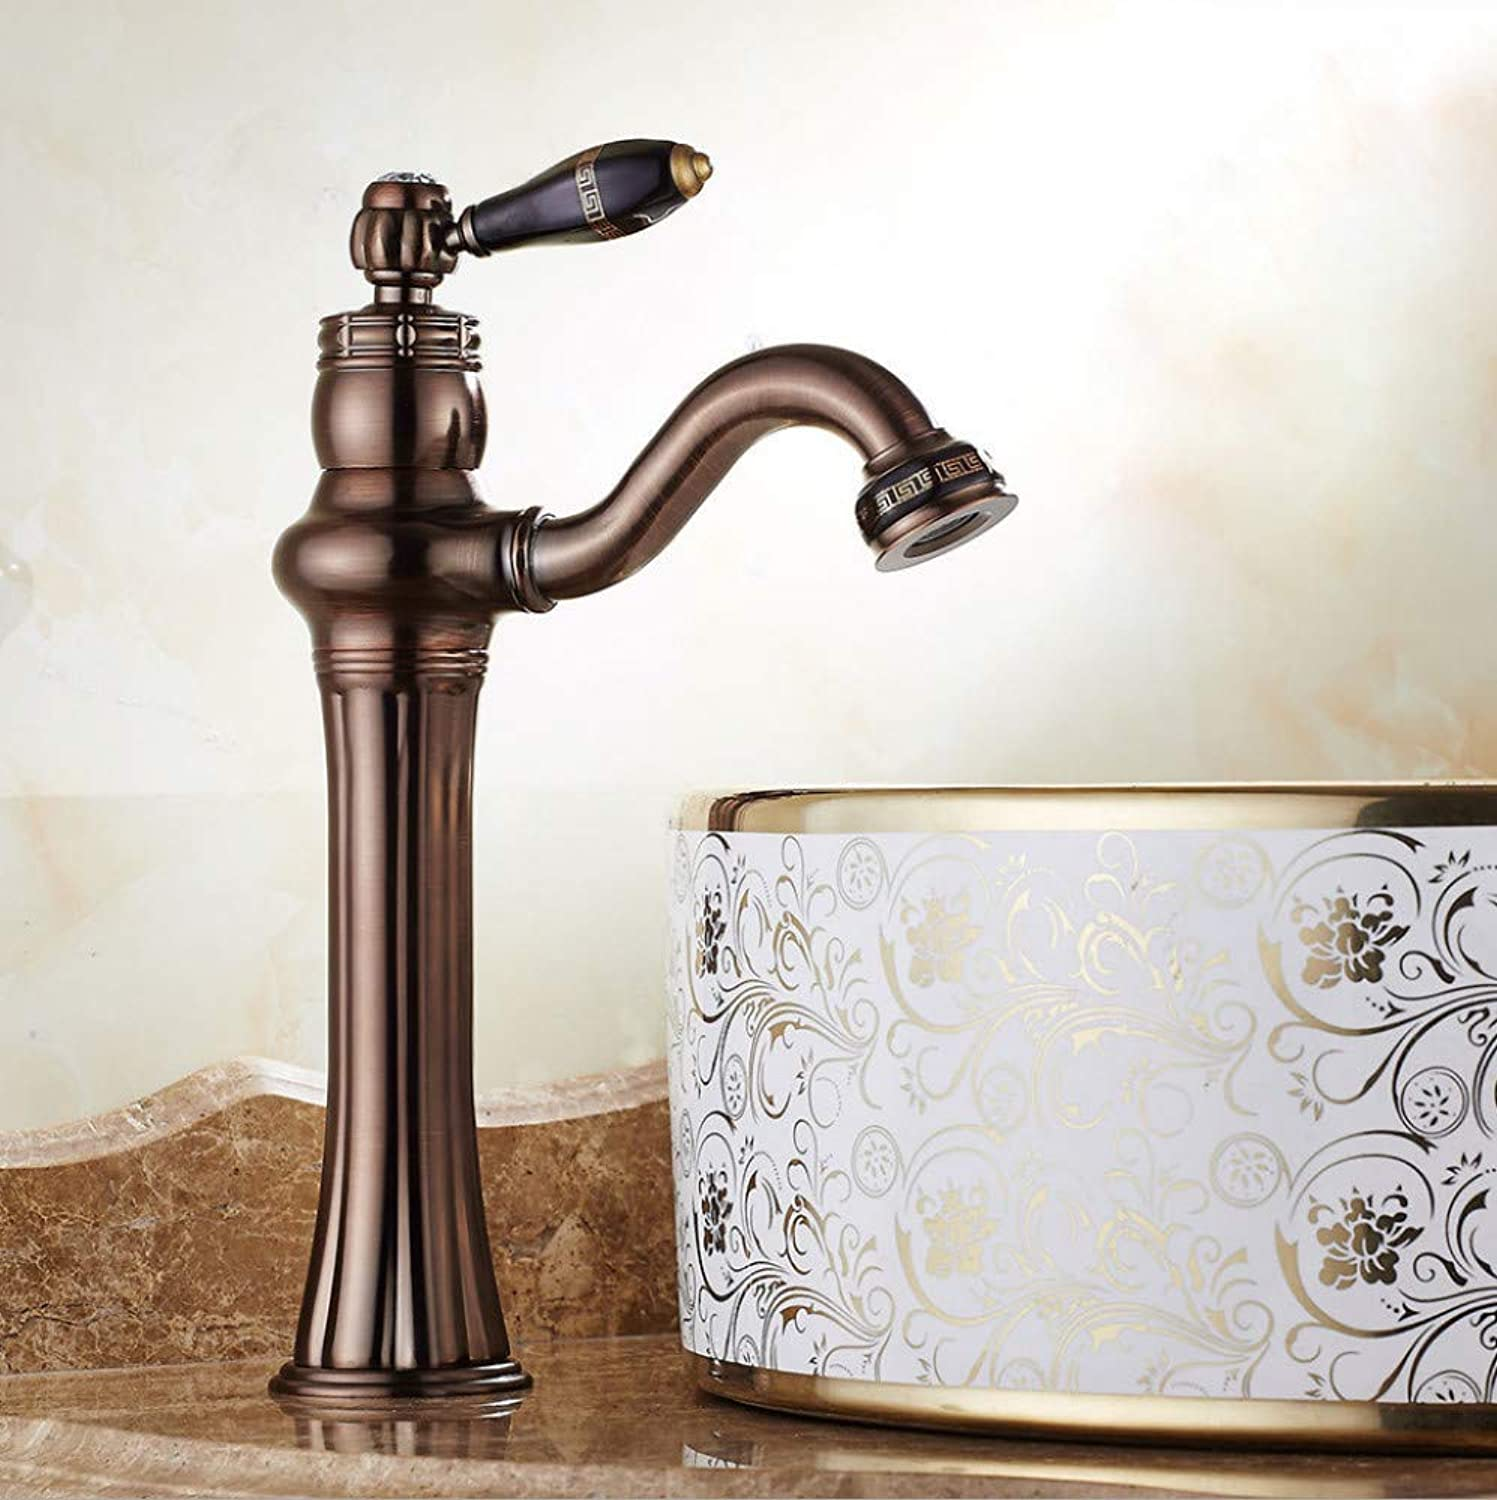 Faucet Basin European Faucet Above Counter Basin hot and Cold Faucet Bathroom wash Basin redating Faucet Antique